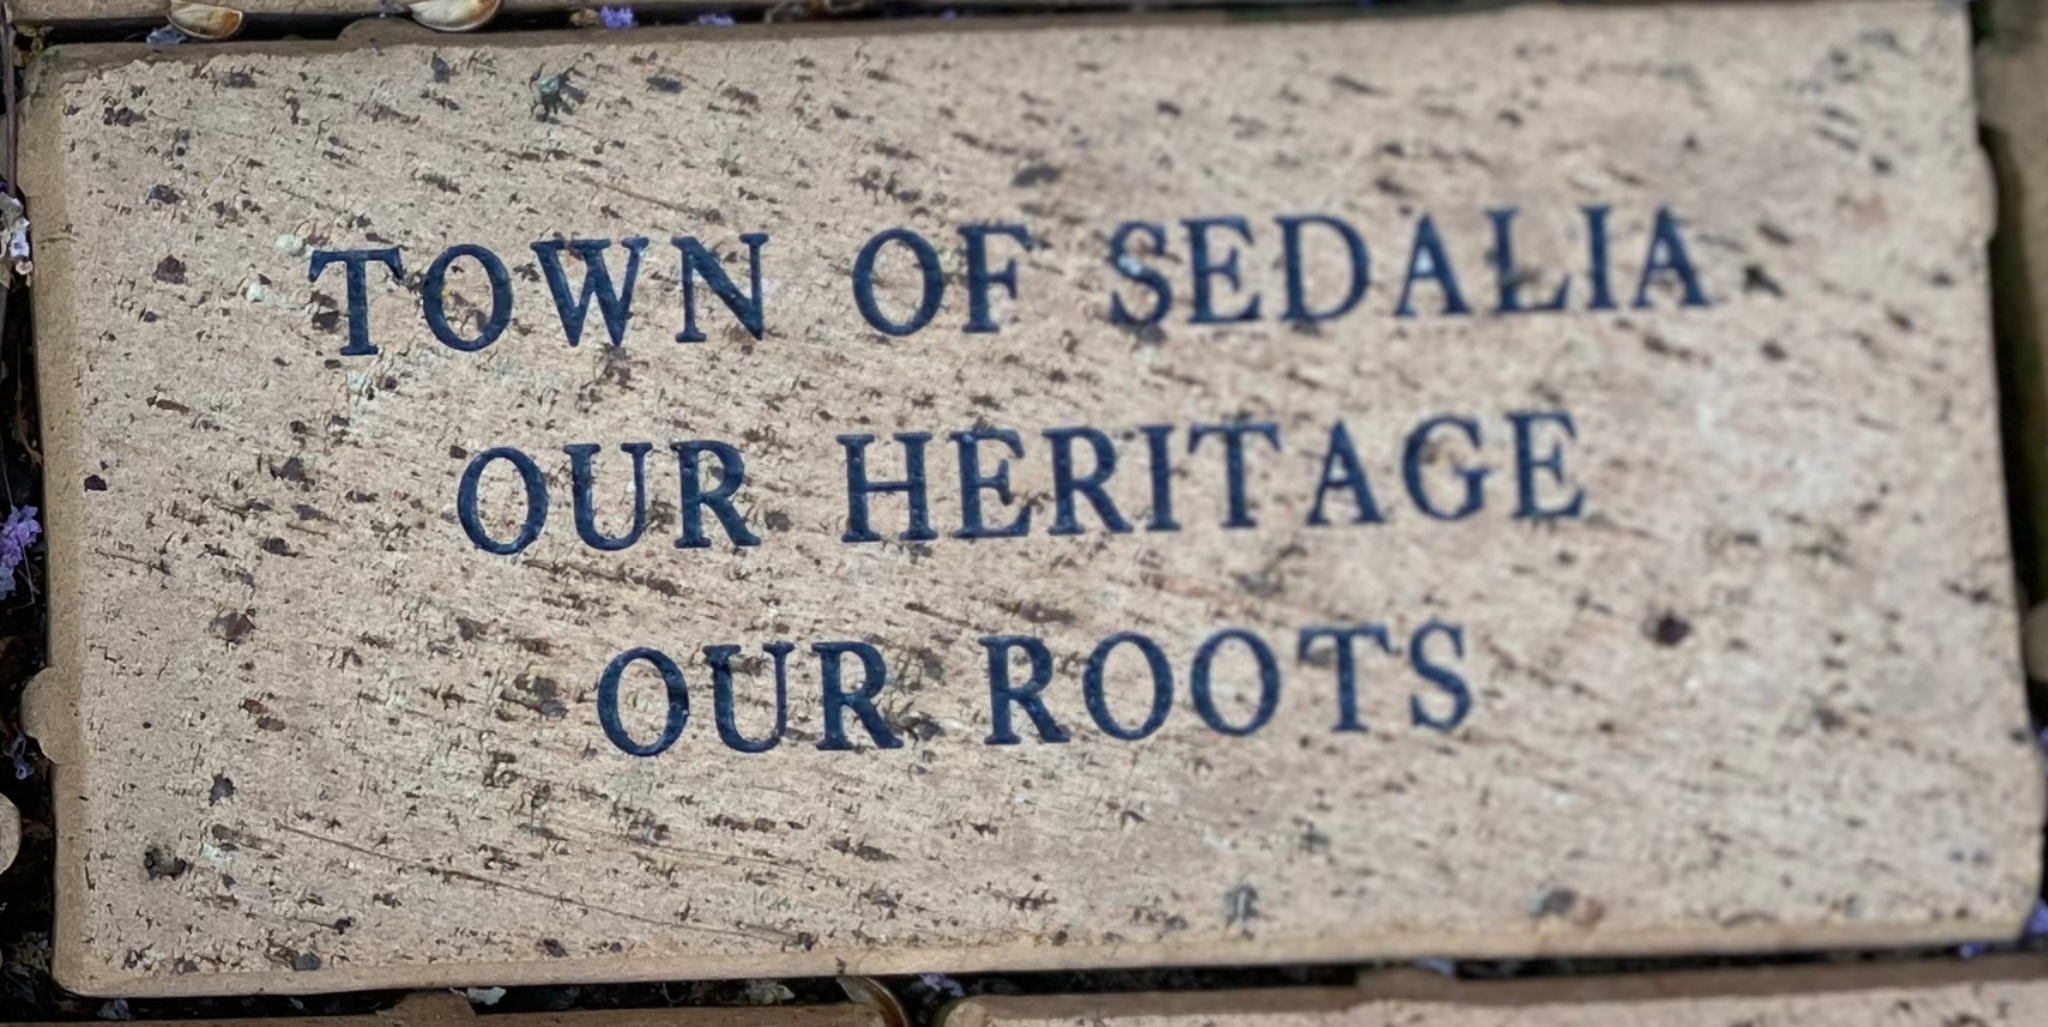 TOWN OF SEDALIA OUR HERITAGE OUR ROOTS